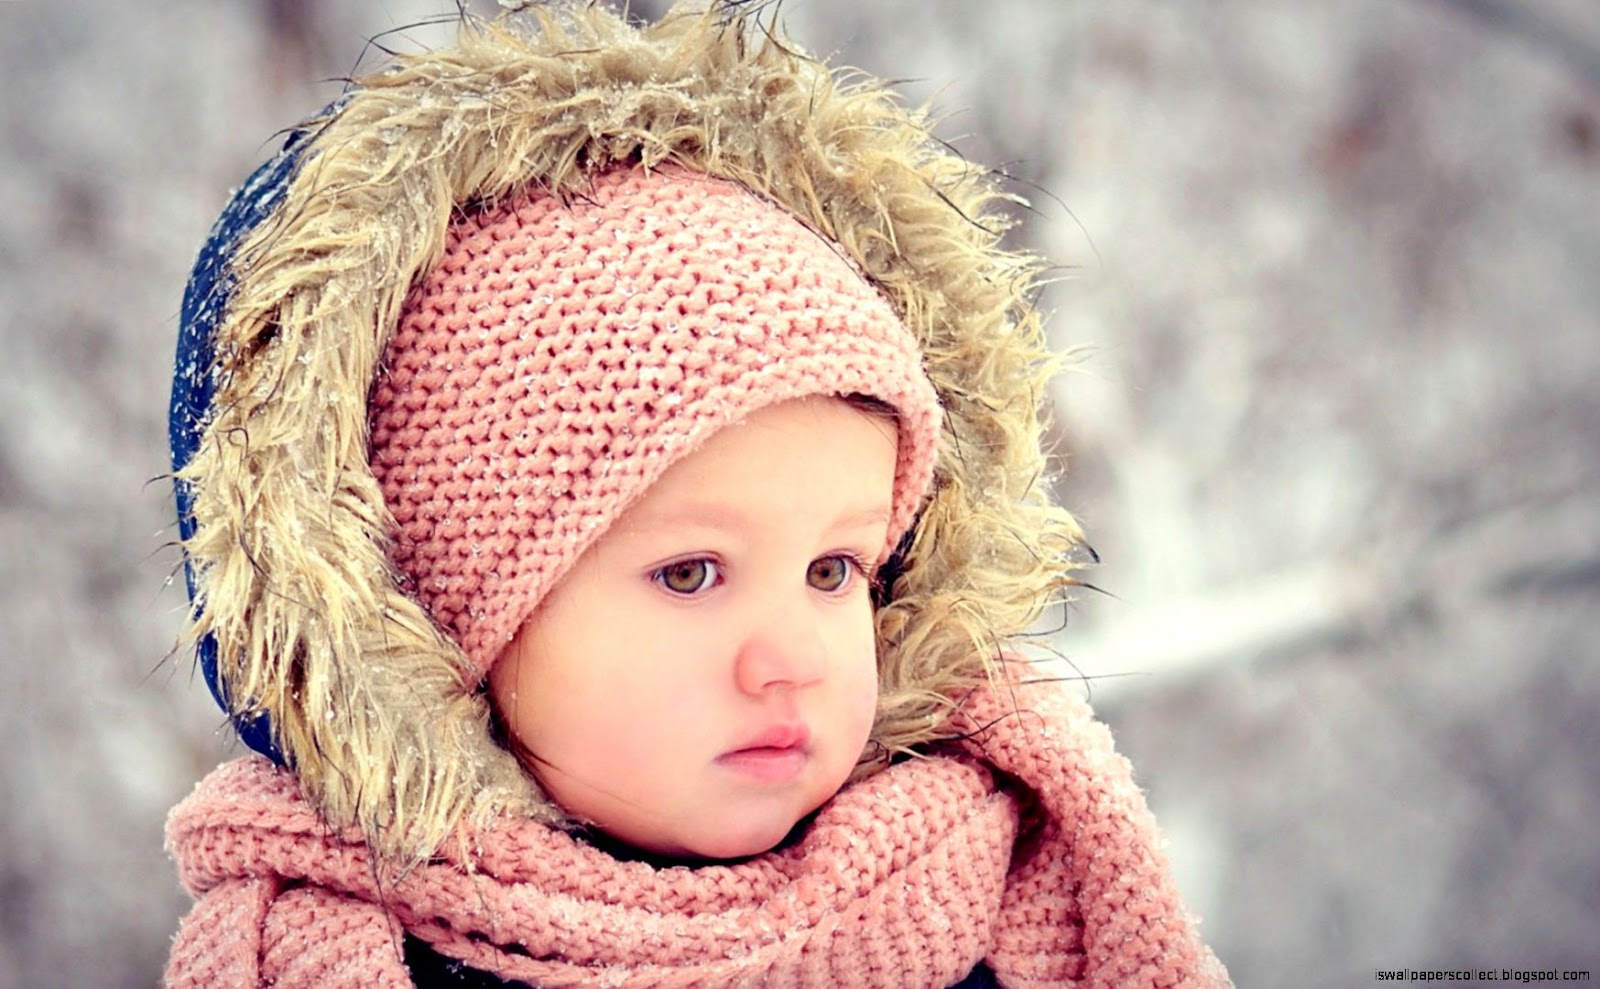 Cute Baby Girl Sad | Wallpapers Collection